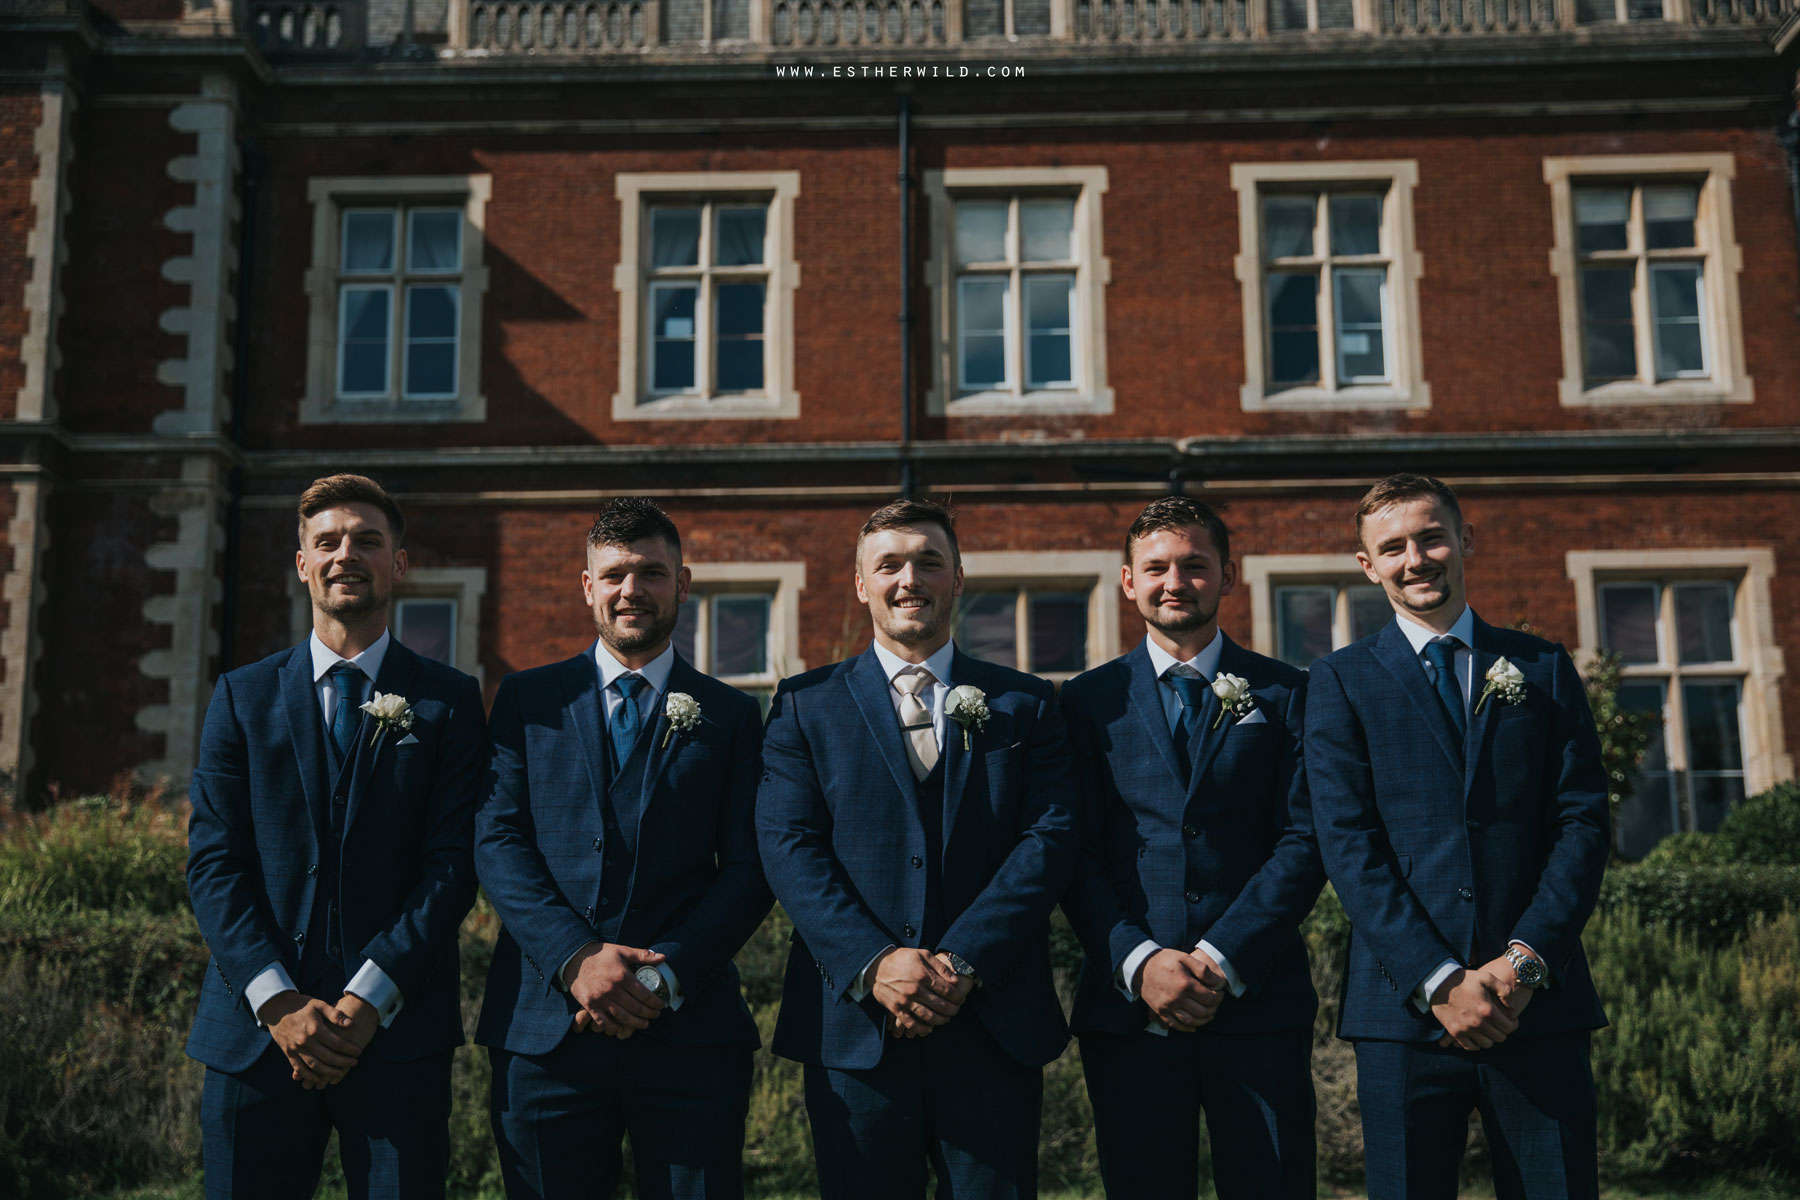 Lynford_Hall_Wedding_Thetford_Mundford_Esther_Wild_Photographer_IMG_1921.jpg